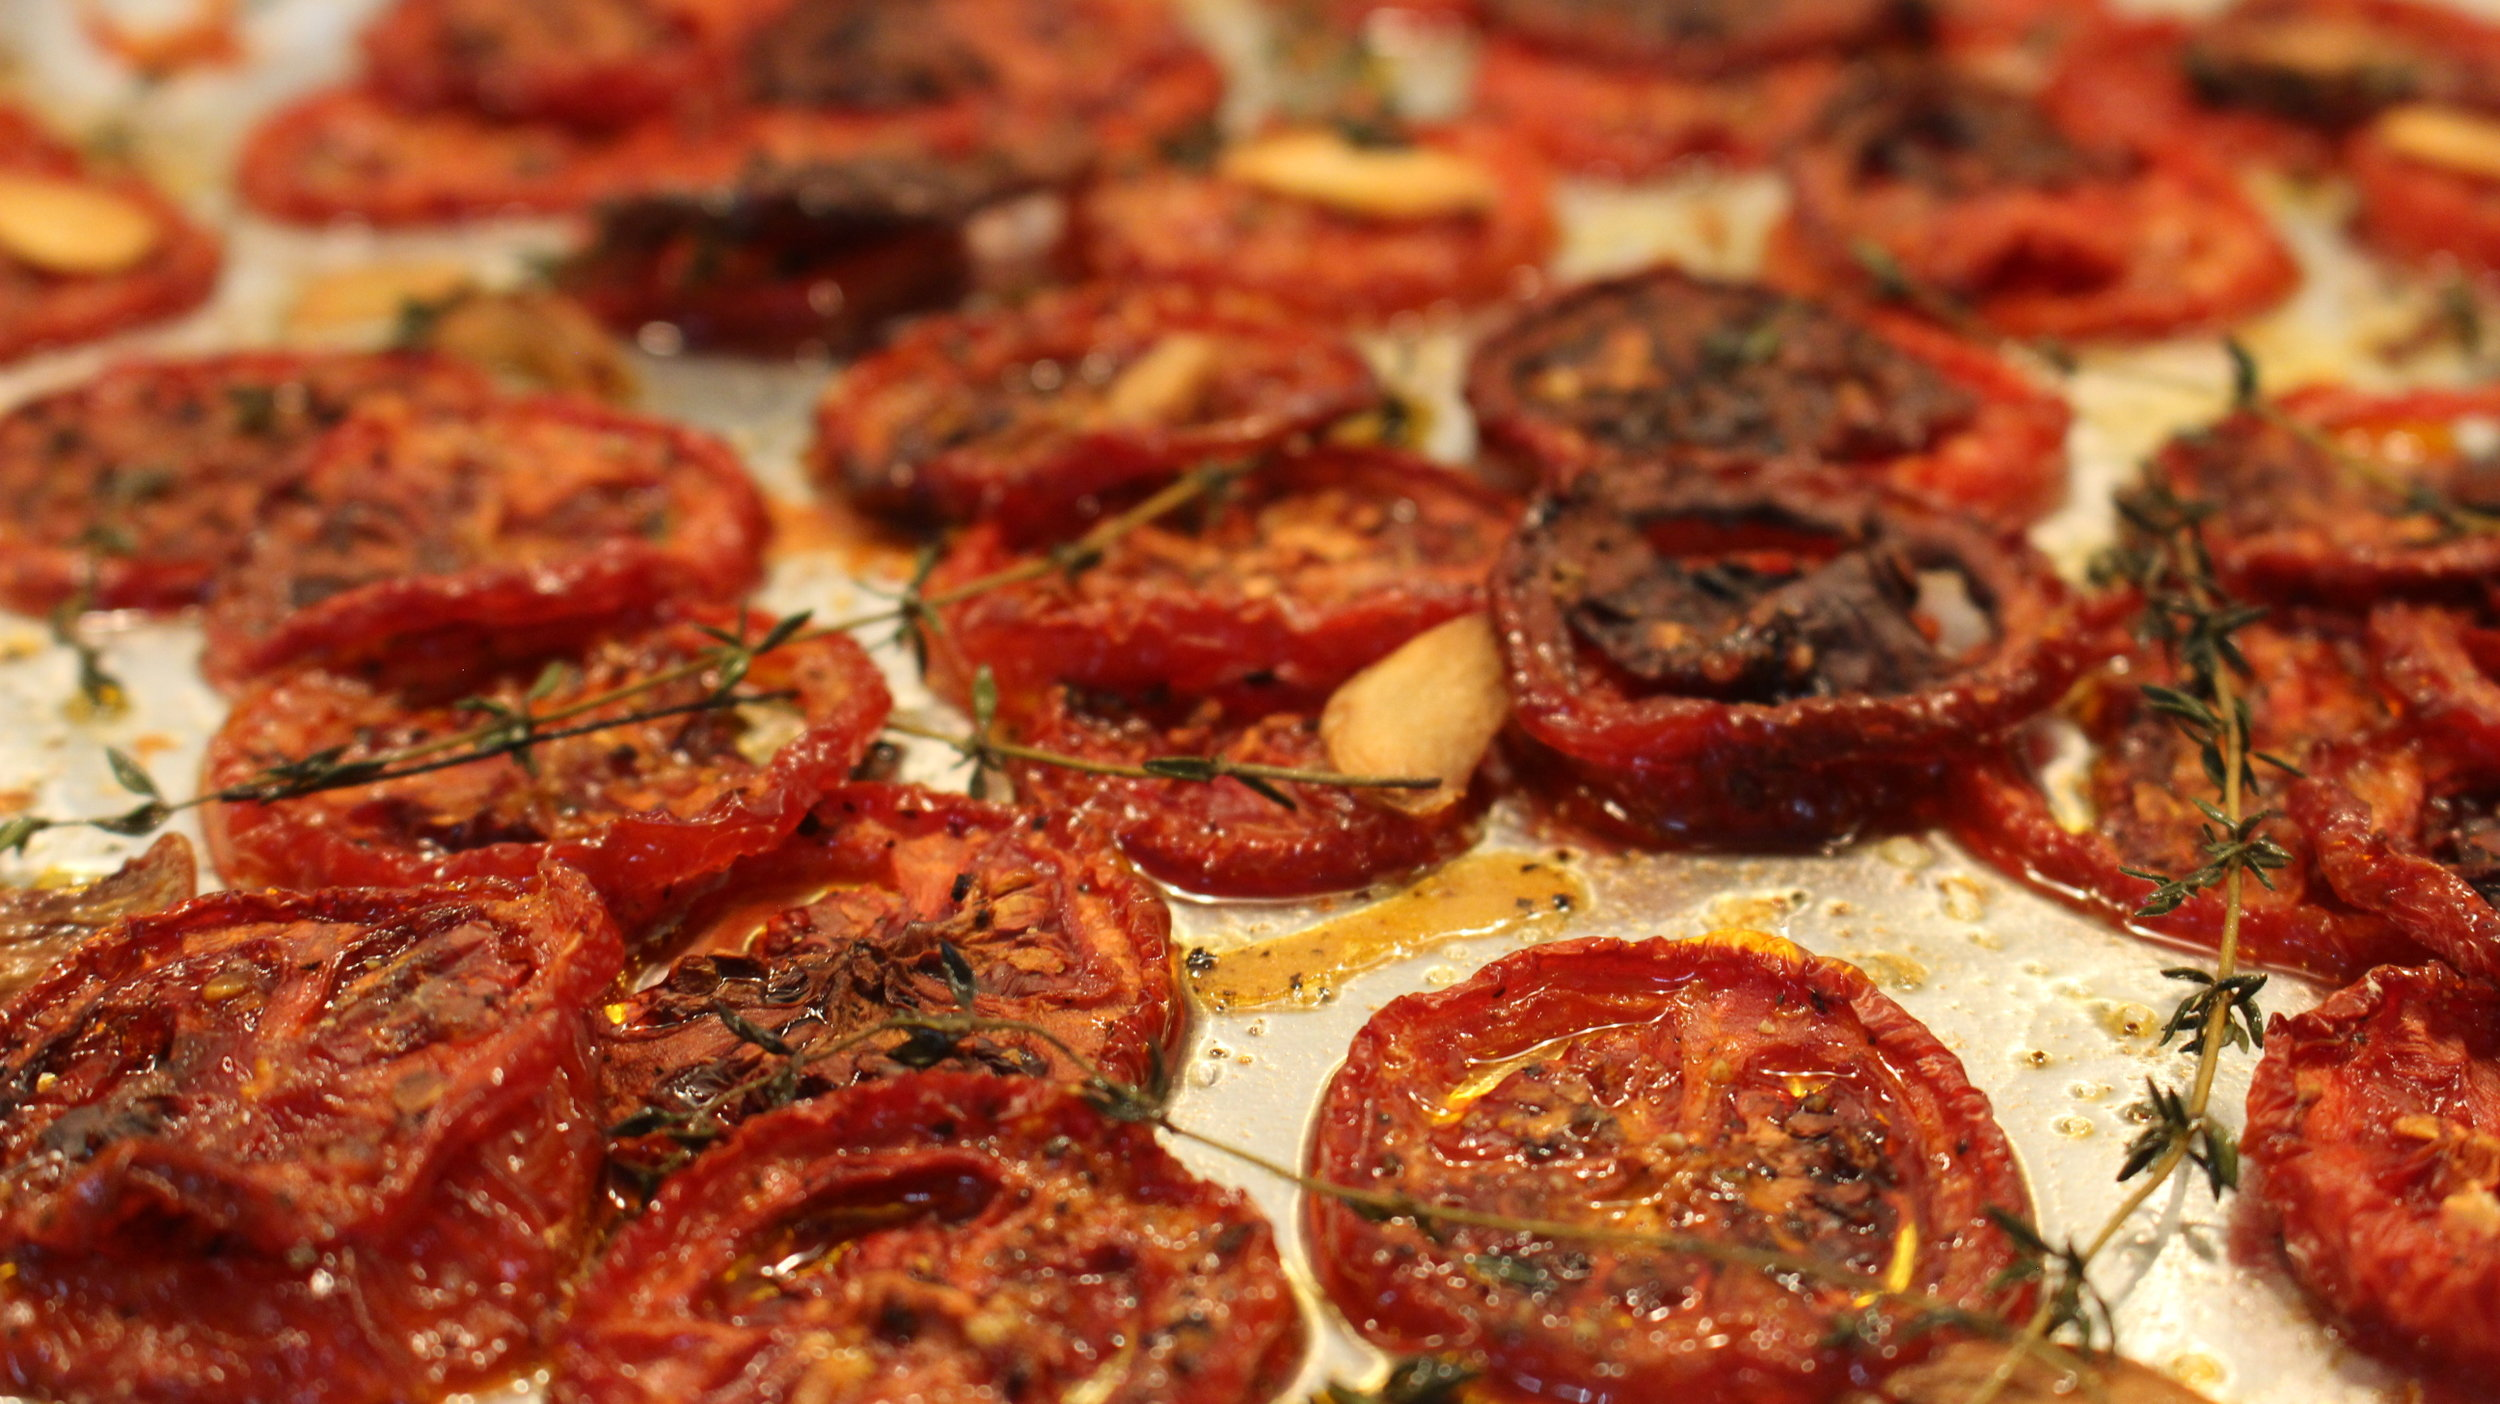 Roasted tomatoes for our beautiful salad already prepped!